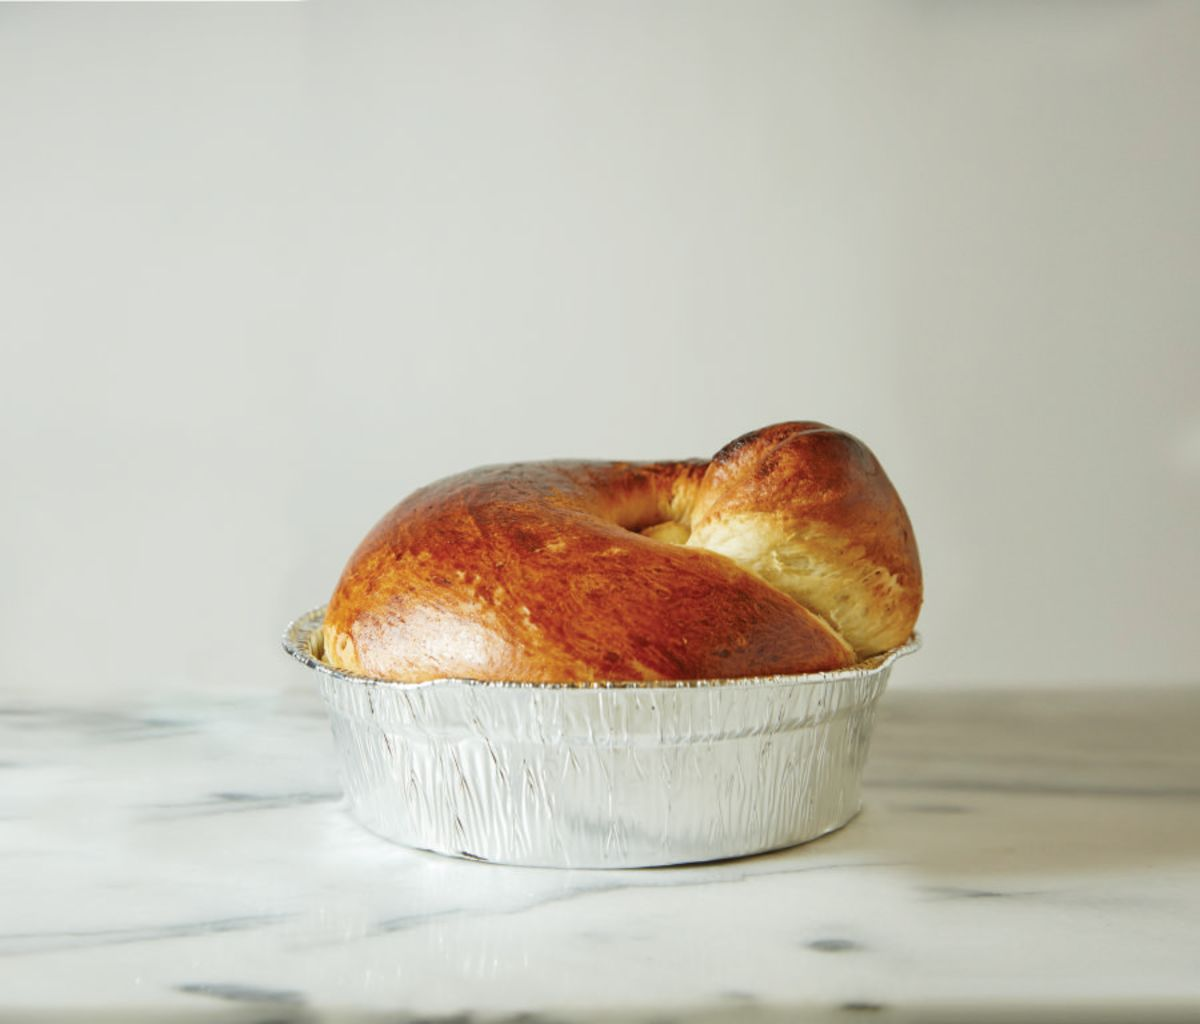 Silan Stuffed Challah with Cardamom Final